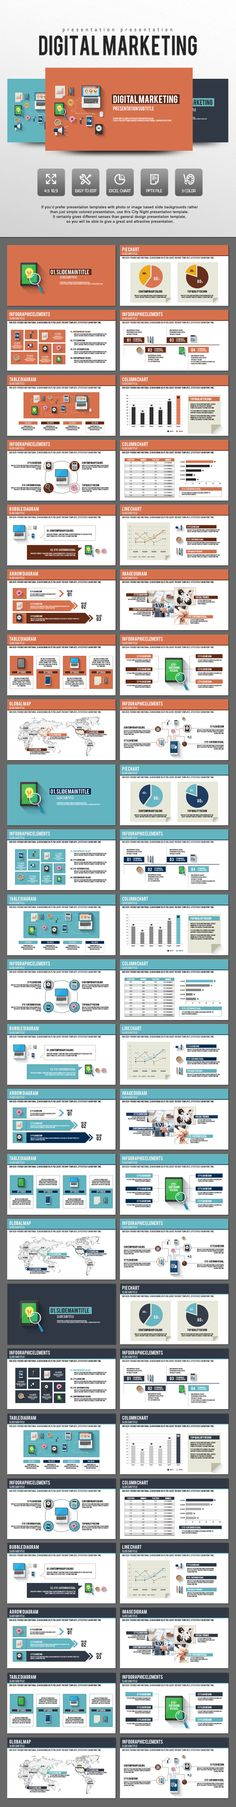 Marketing Plan Powerpoint Template By Slidepro On Creative Market